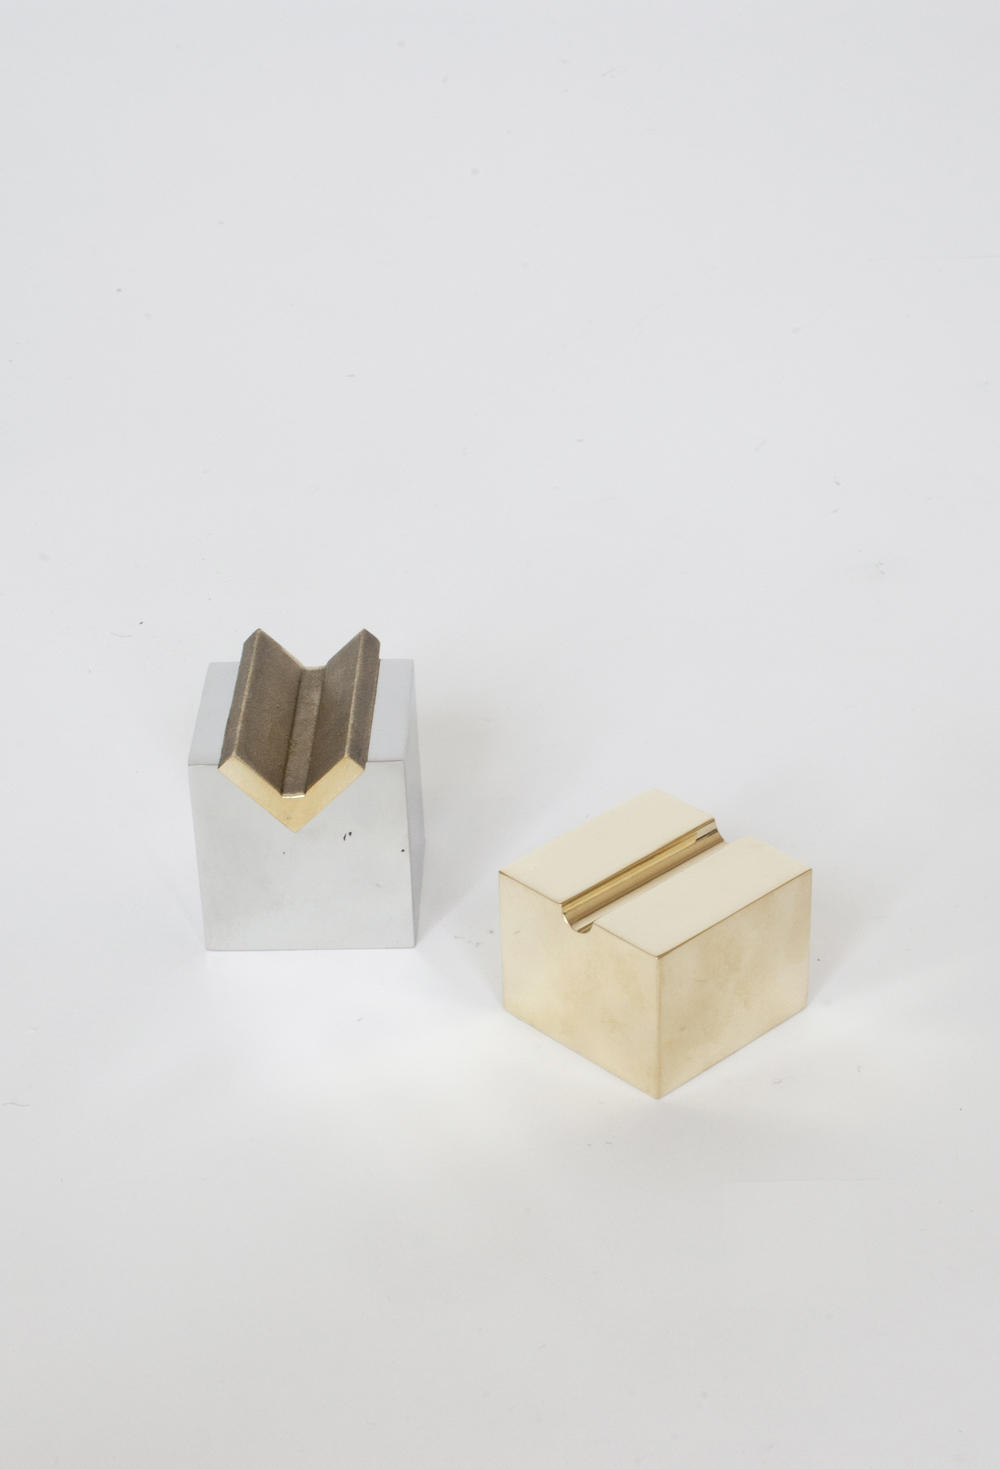 """INSERT PEN AND PENCIL HOLDER  POLISHED STAINLESS STEEL AND BRASS 2""""H x 2""""W x 2""""D INQUIRE TO PURCHASE IN STOCK / MADE TO ORDER"""